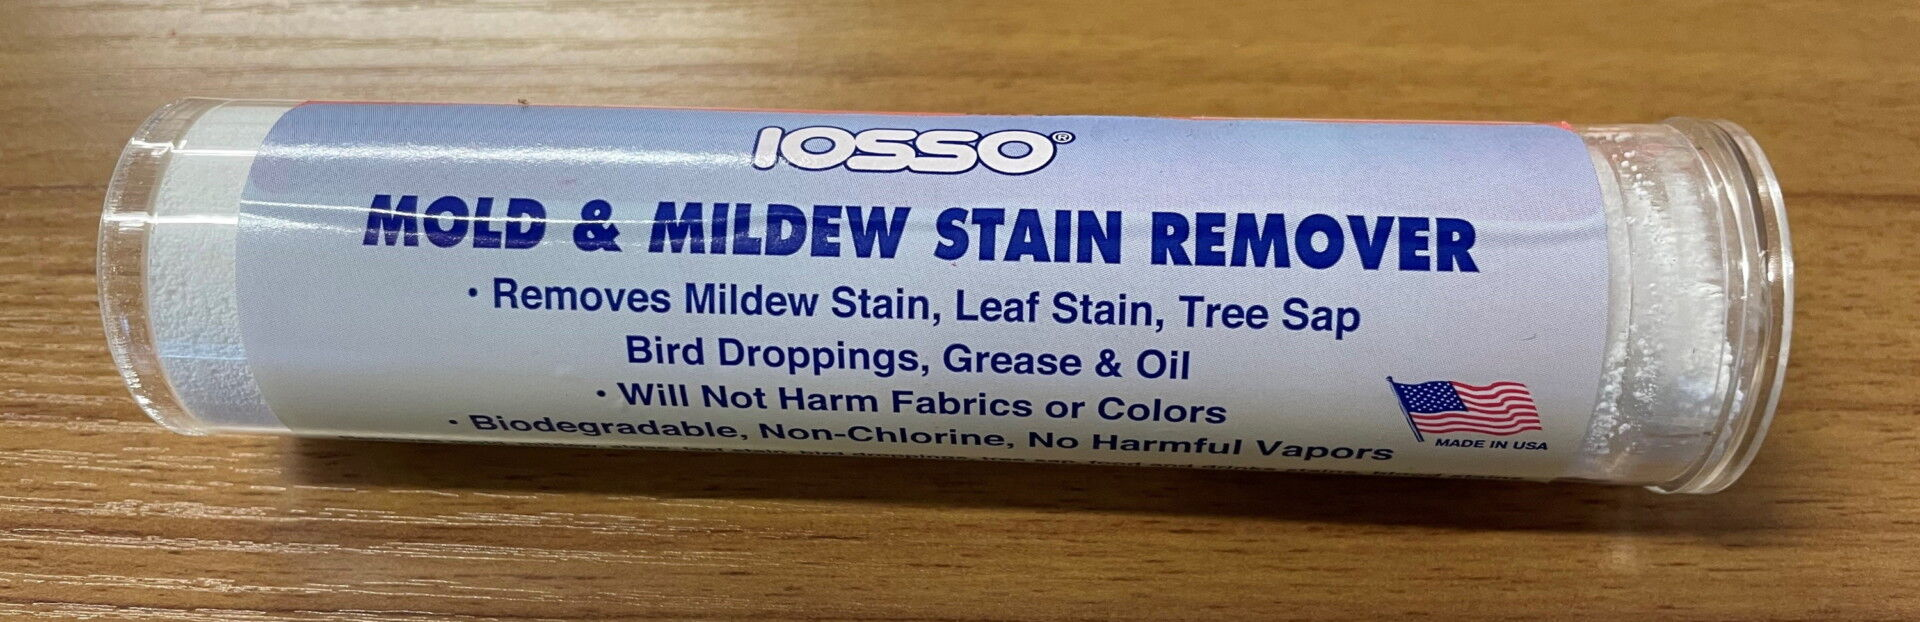 iosso mold mildew stain remover small